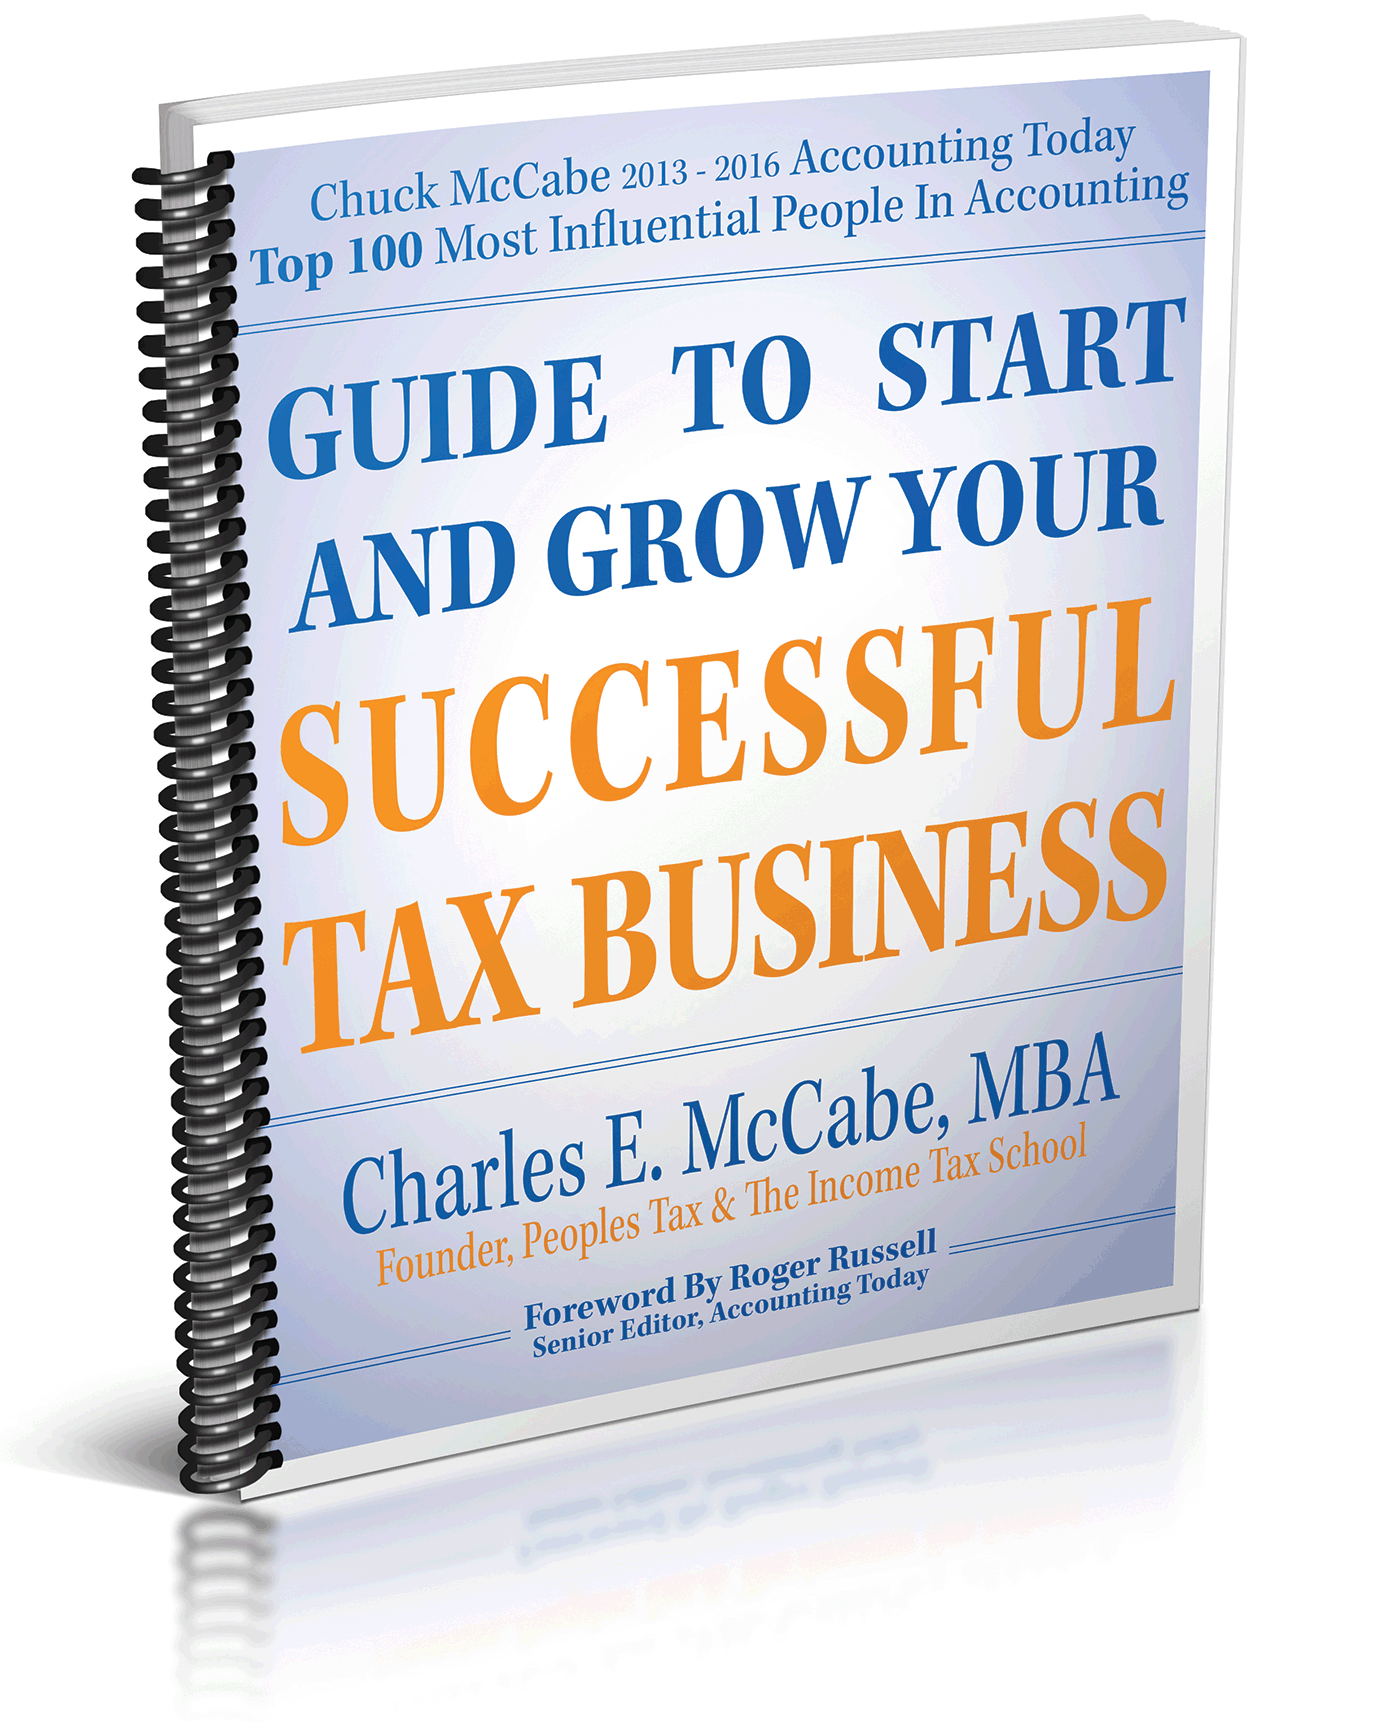 Guide to Start and Grow Your Successful Tax Business (2017) - #4754